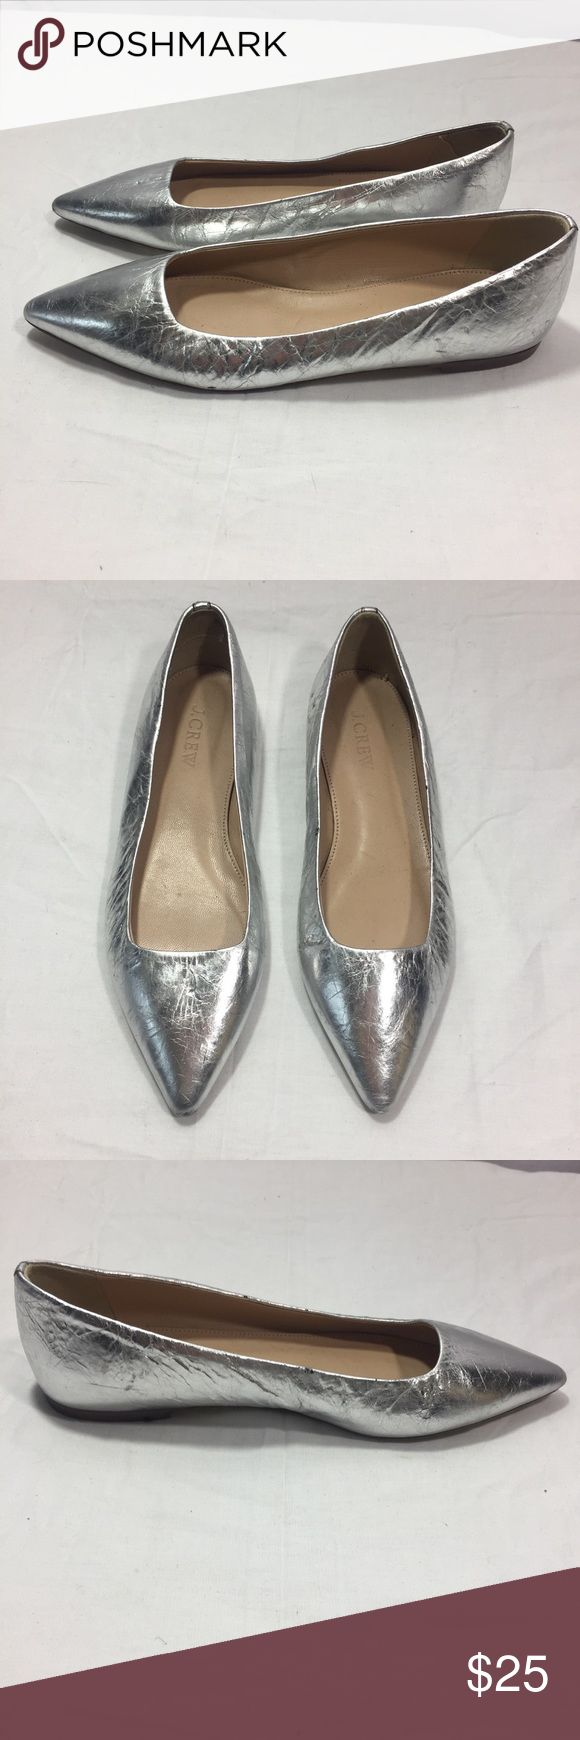 J CREW Silver Flat Shoes Sz 5.5 ***All Best Reasonable Offers Accepted!***  Details: These J. Crew silver flats are super cute. They have a pointed toe and reflect color well.Small (less than 1/2 inch) heel.Scuffs on bottom of shoes and some markings on shoe.Measurements (approx..)Sole Length: 10 Inches(Length across the outside bottom of the shoe from the toe to the heel) J. Crew Shoes